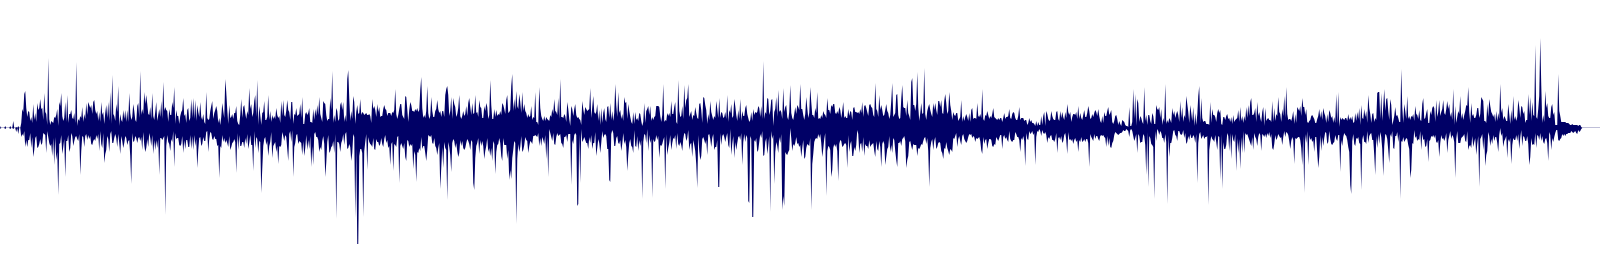 waveform of track #133127